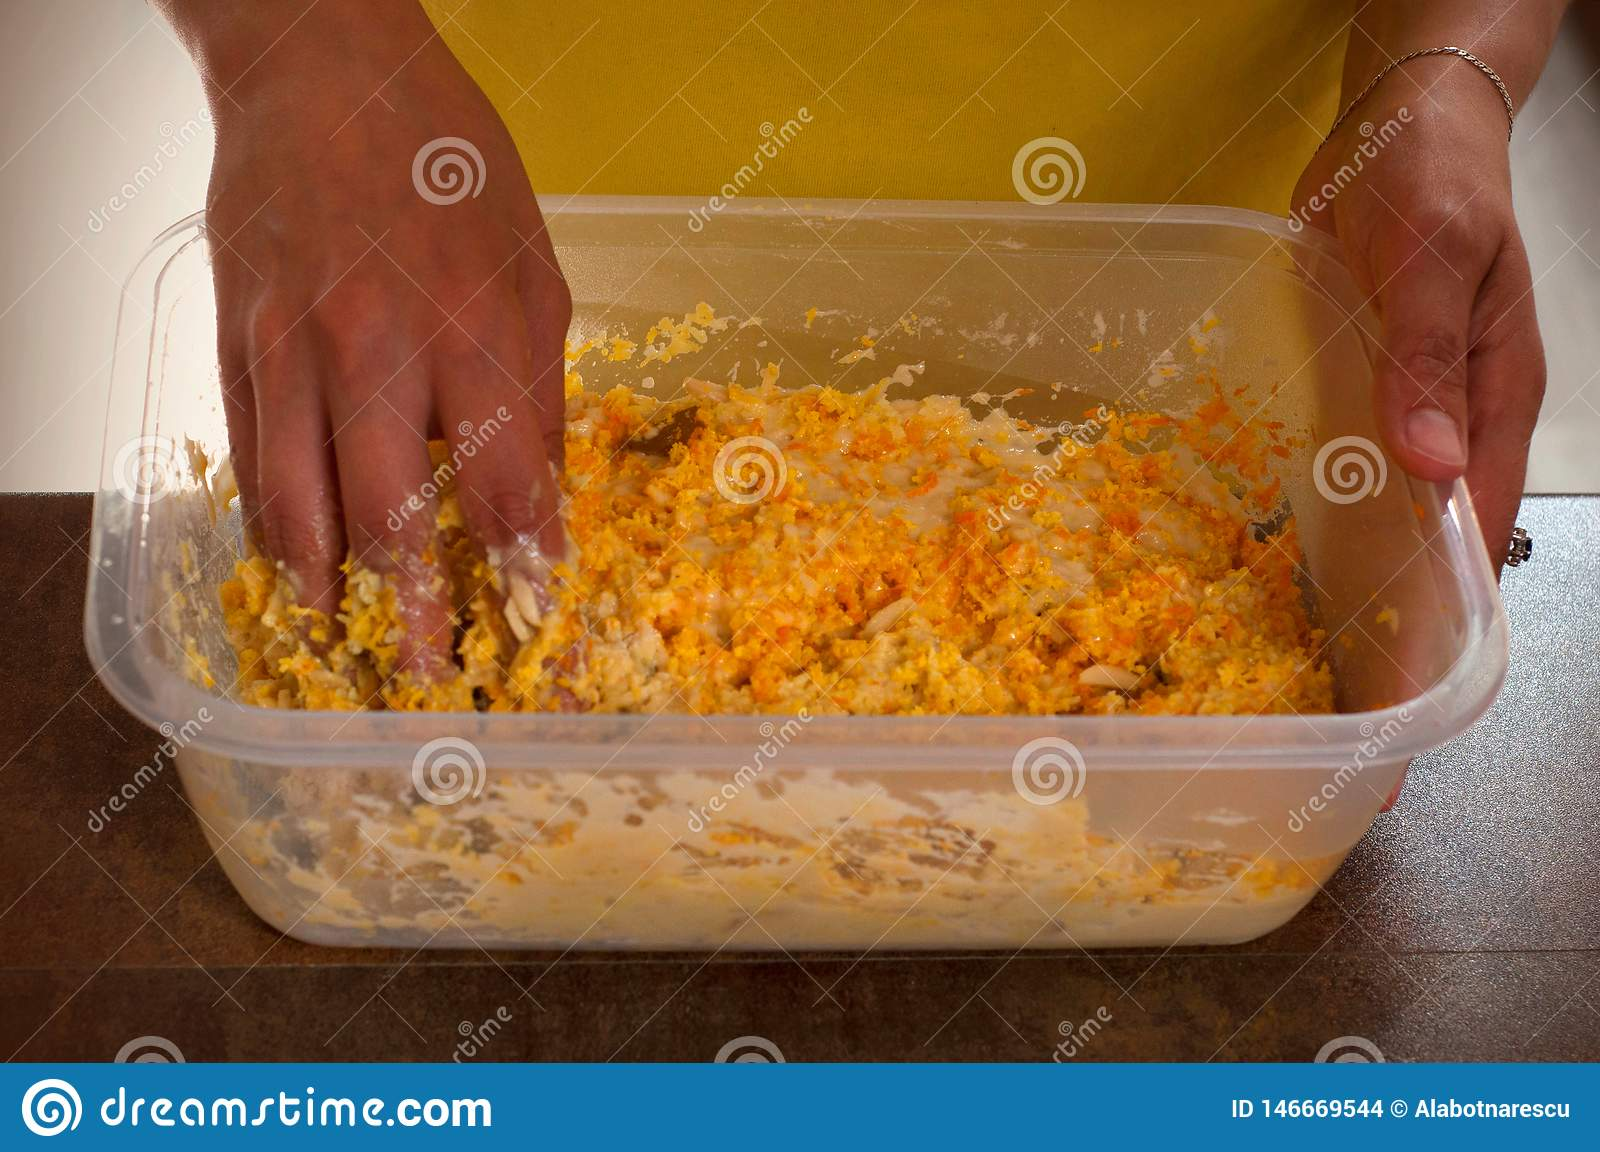 Woman makes dough for Easter cake with dried raisin, chopped almonds and crushed mandarin shells over brown wooden background.